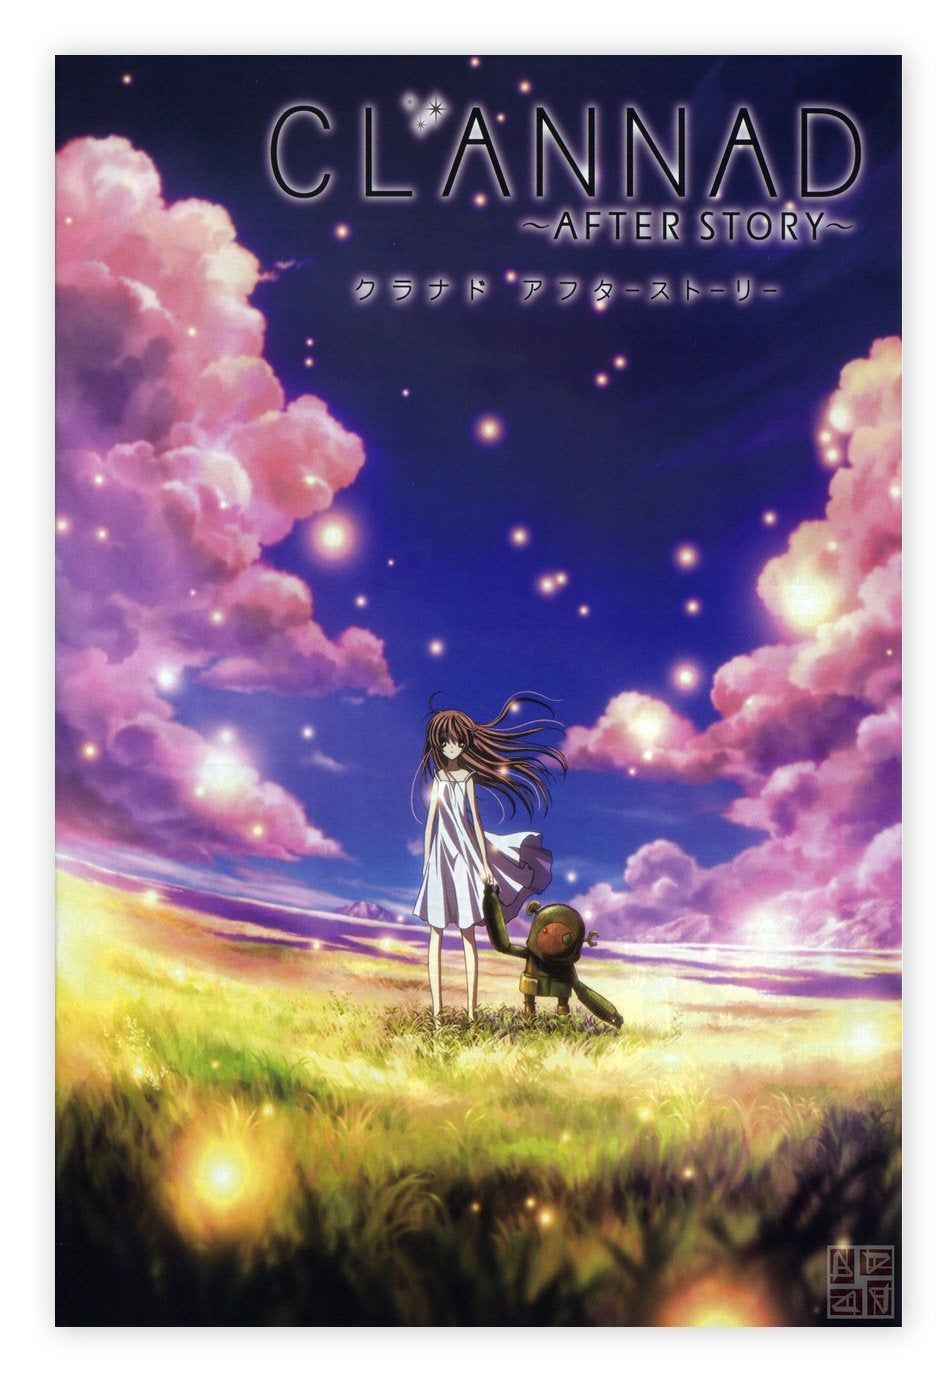 clannad after story poster,TV anime poster,Canvas poster